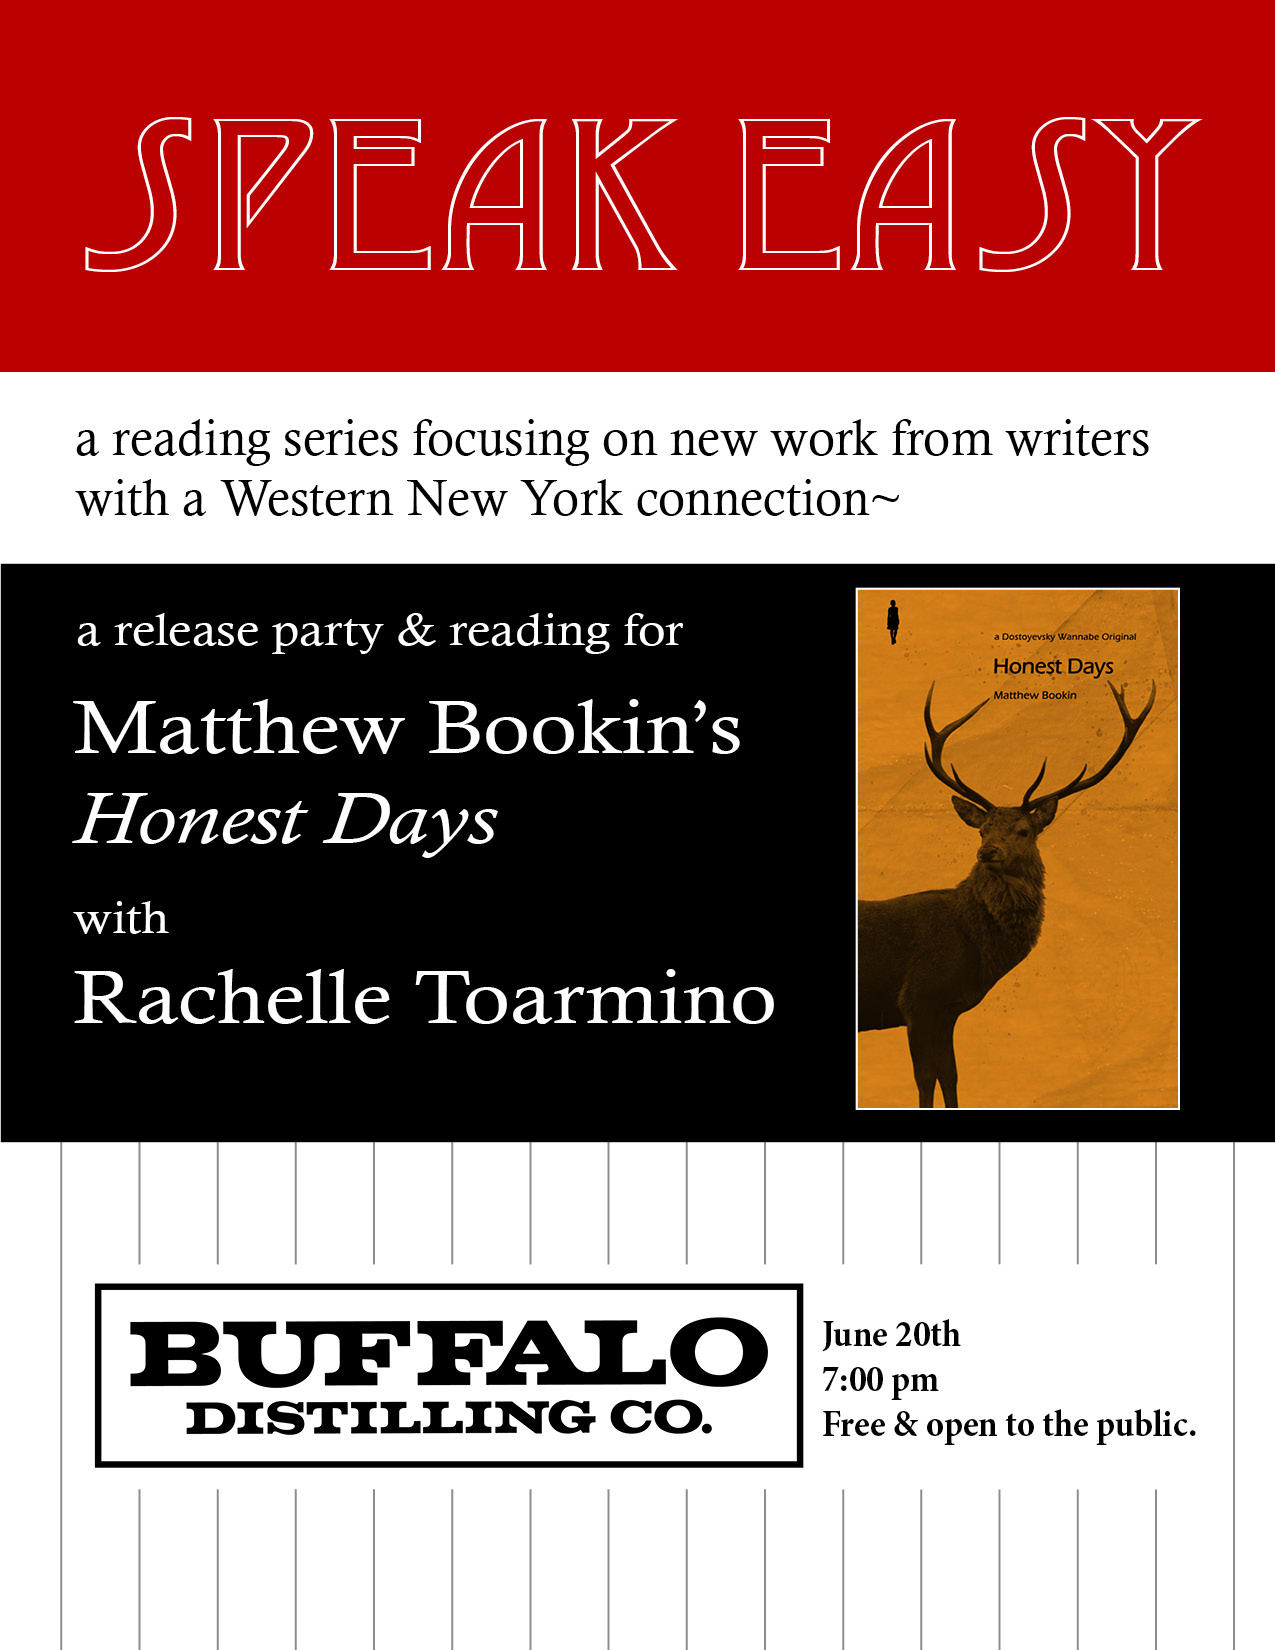 Speak Easy June flyer